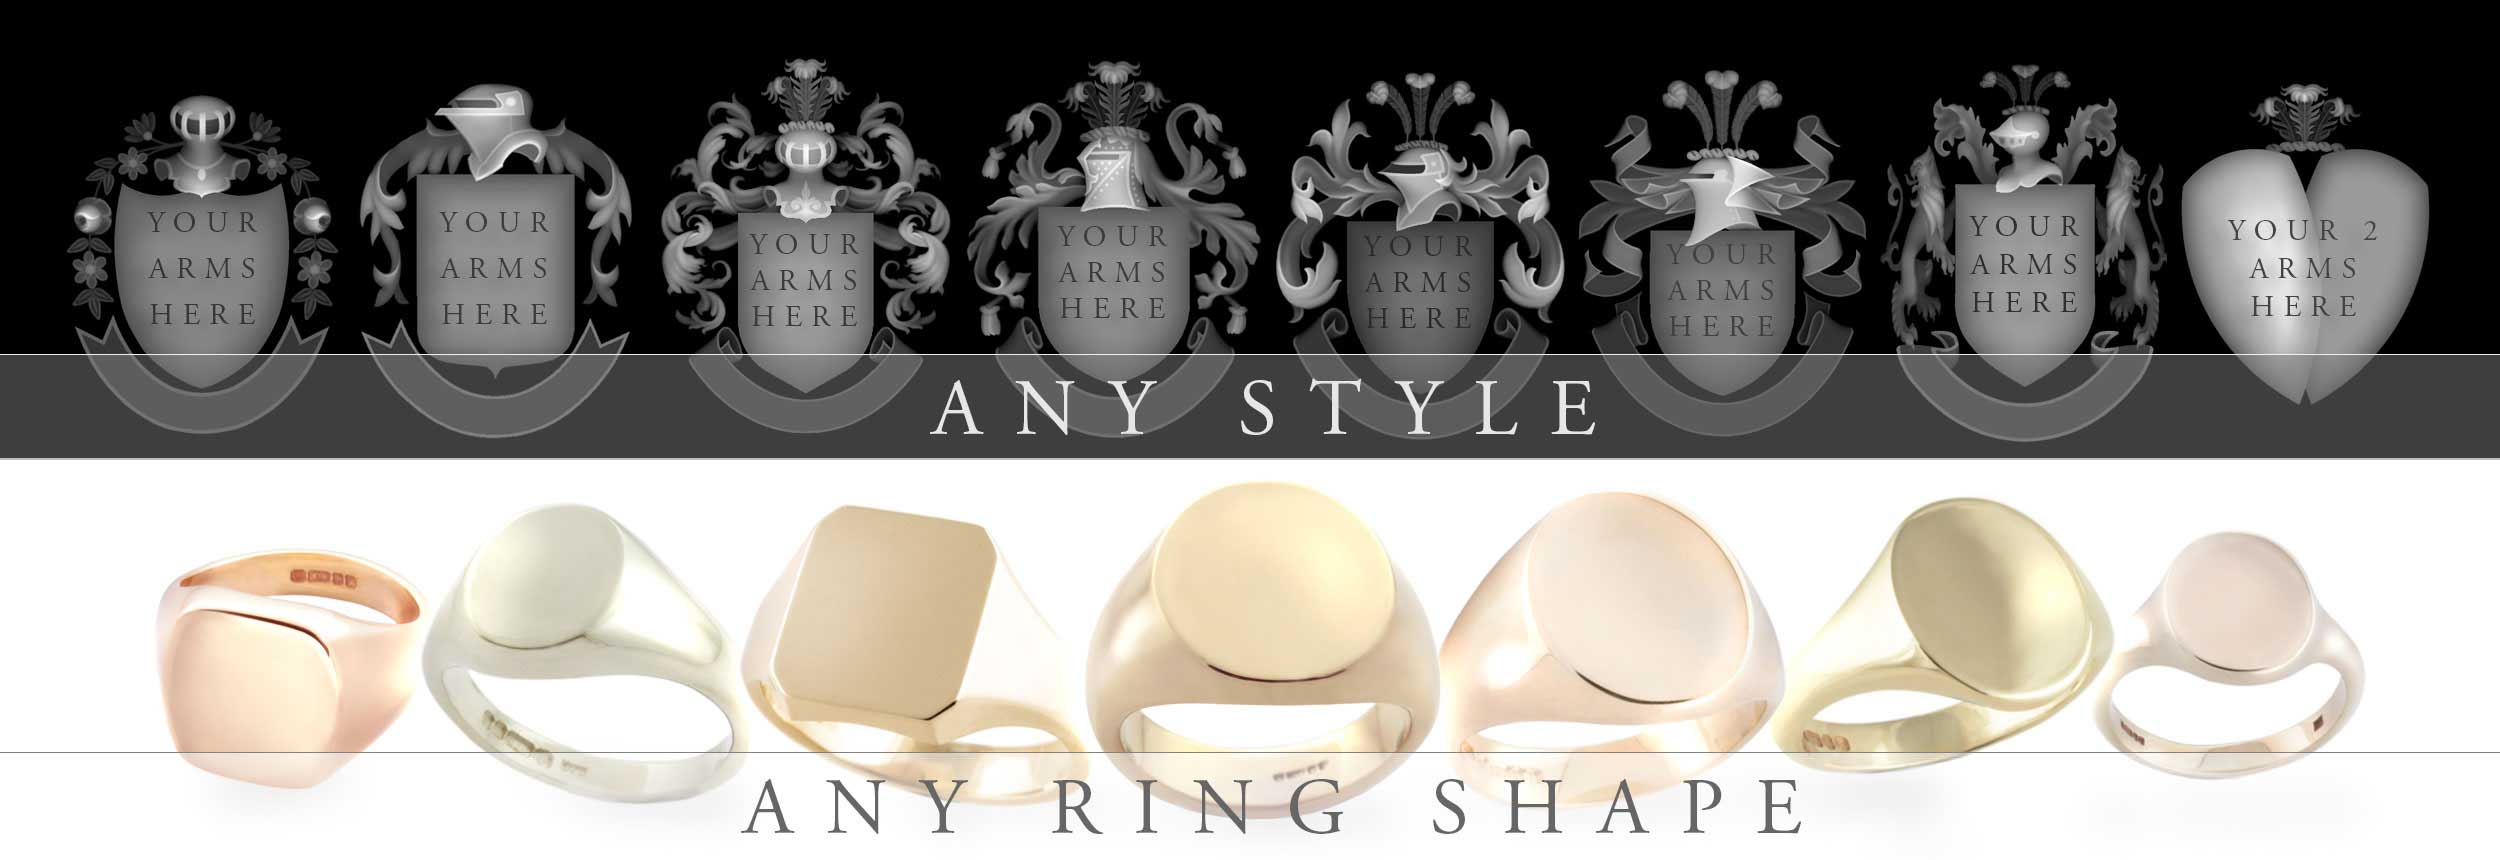 any arms style any signet ring shape